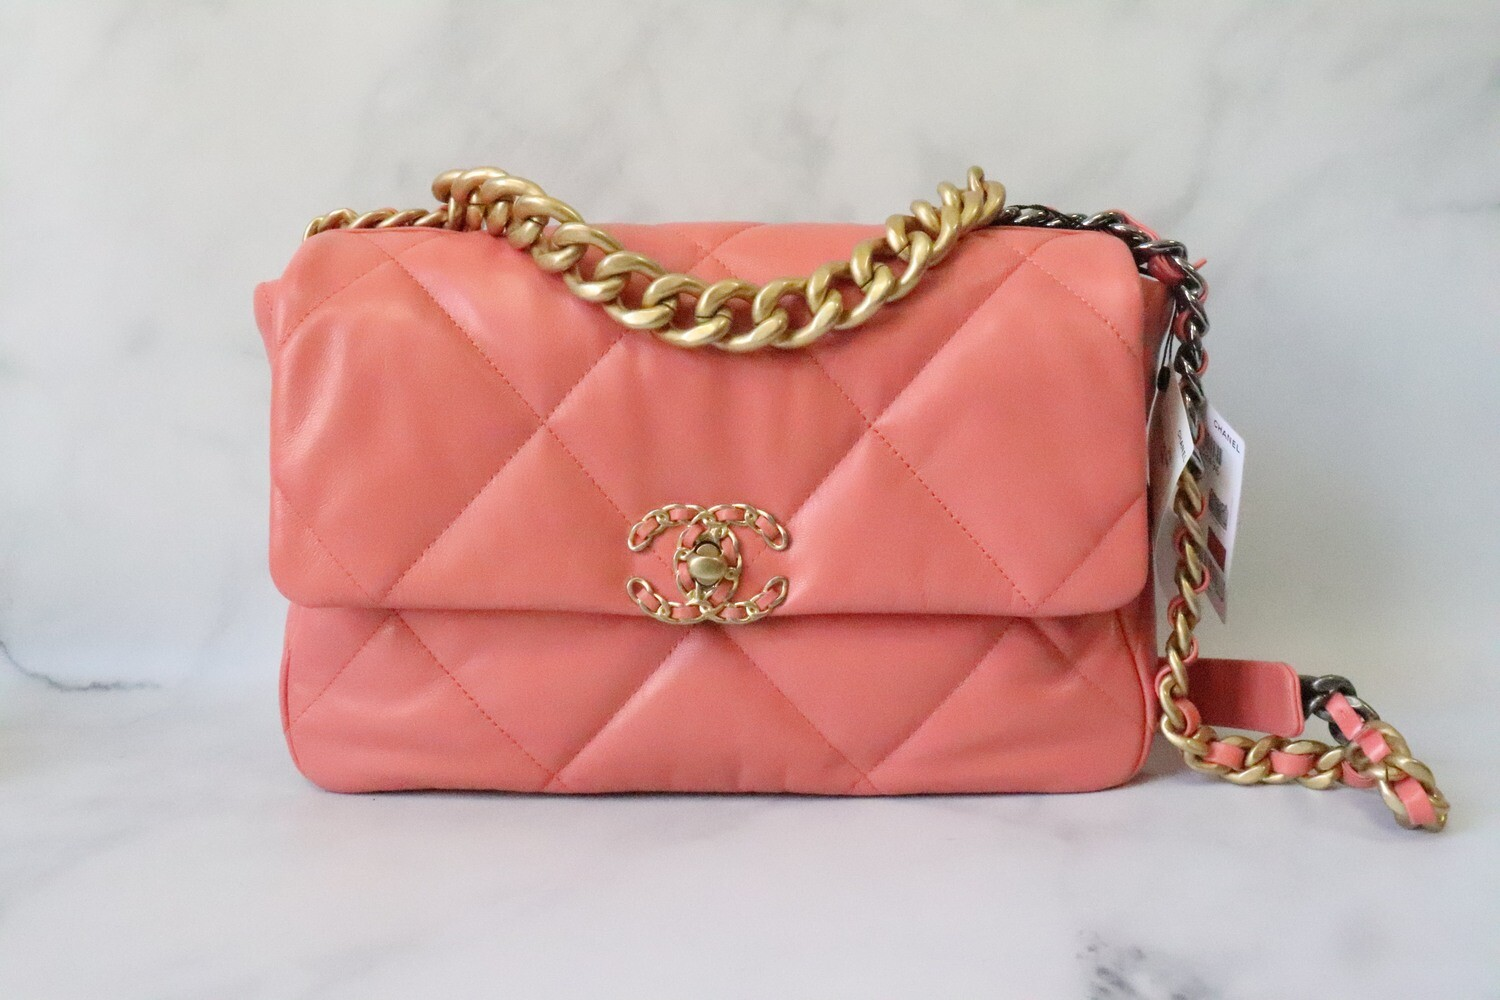 Chanel 19 Large Coral Goatskin Coral, New in Box